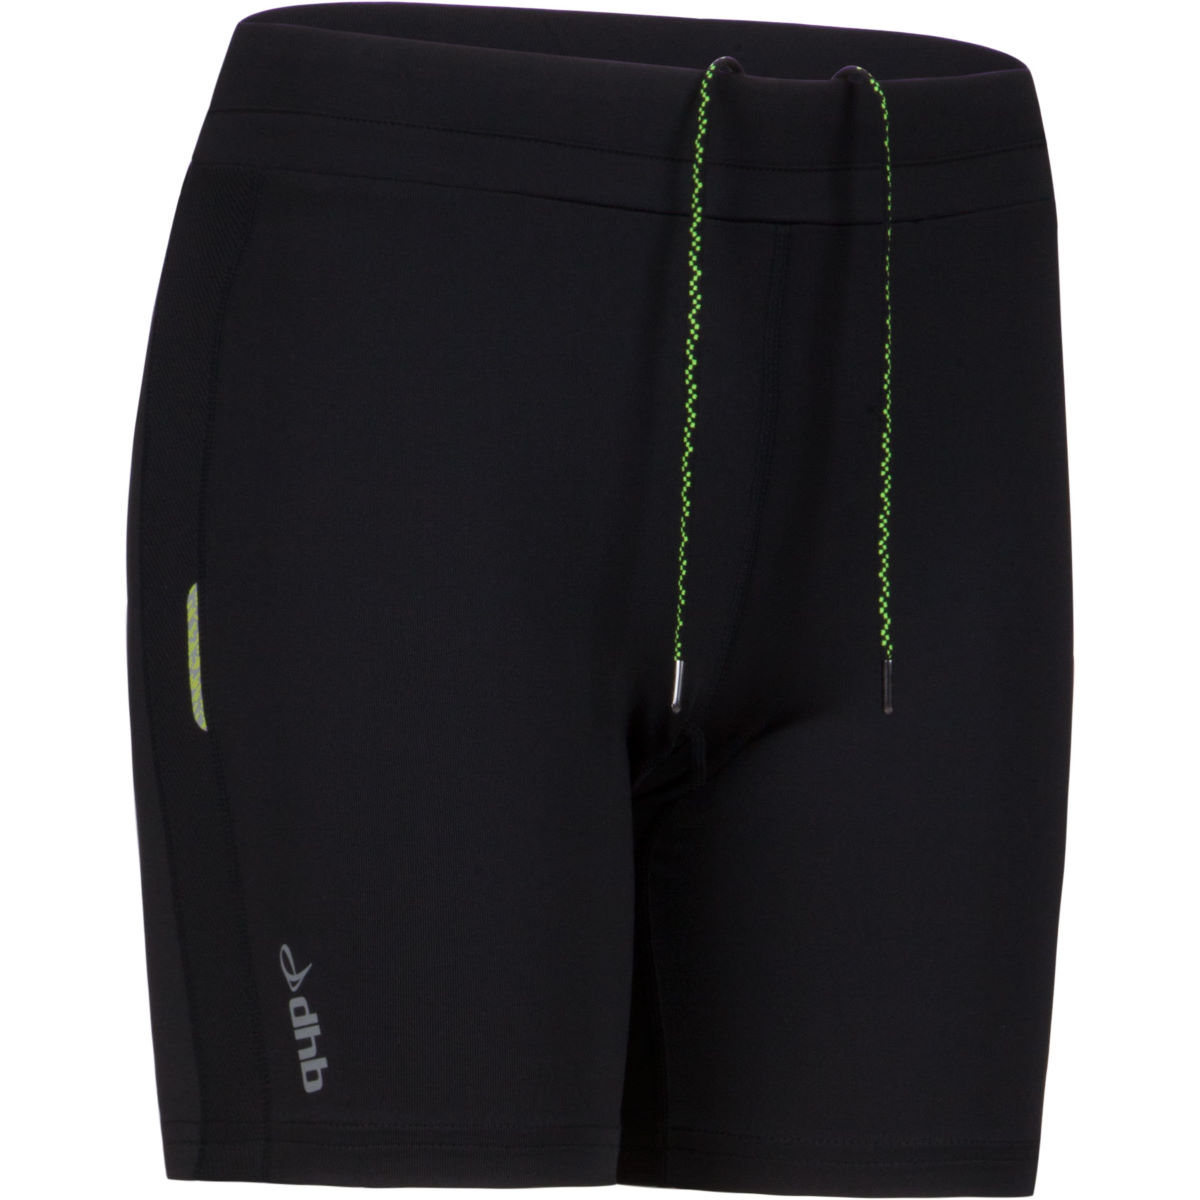 dhb Women's Zelos Tight Short (AW15)